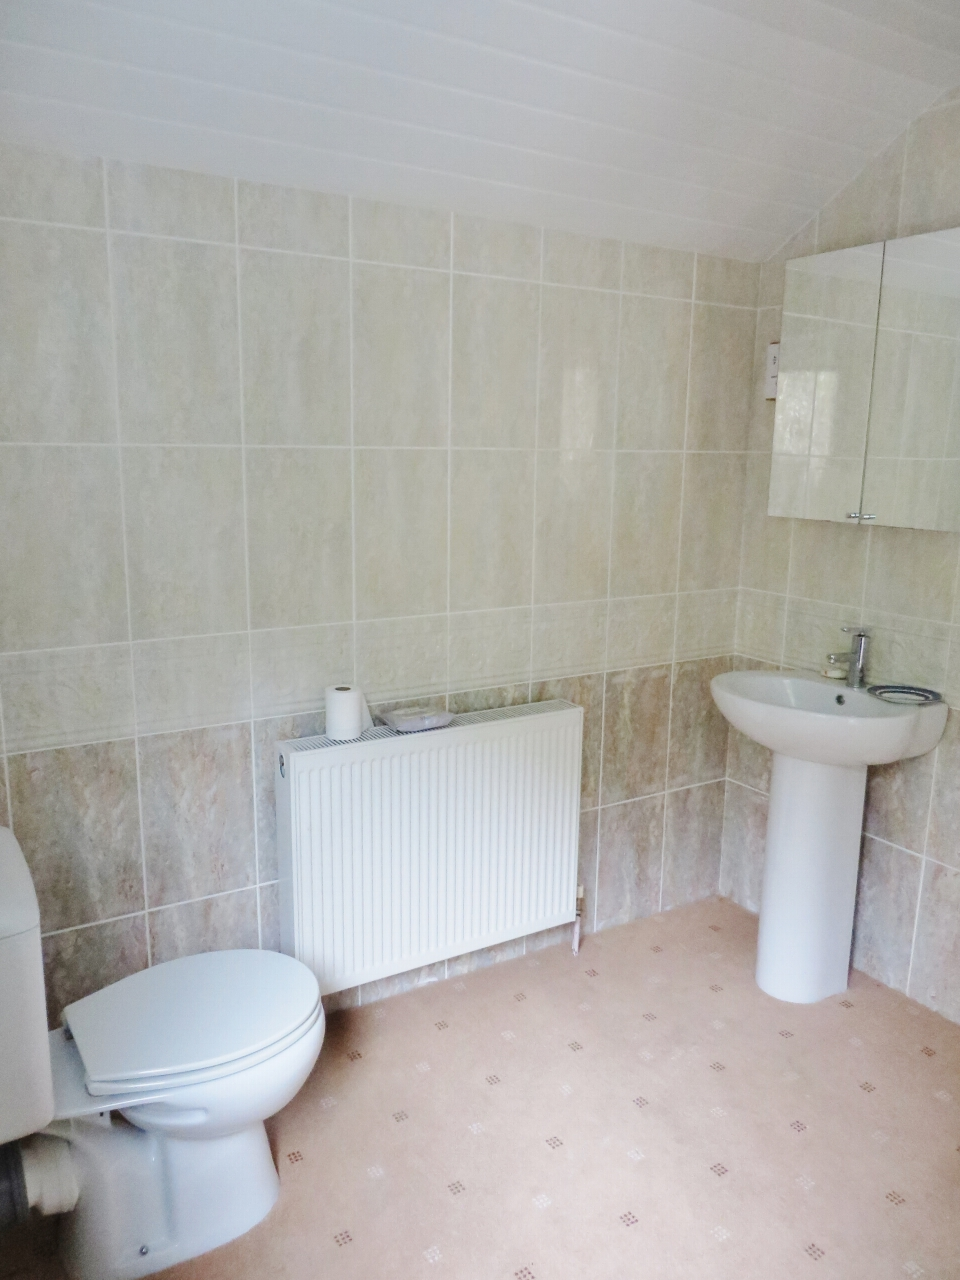 5 bedroom detached house SSTC in Colby - Photograph 21